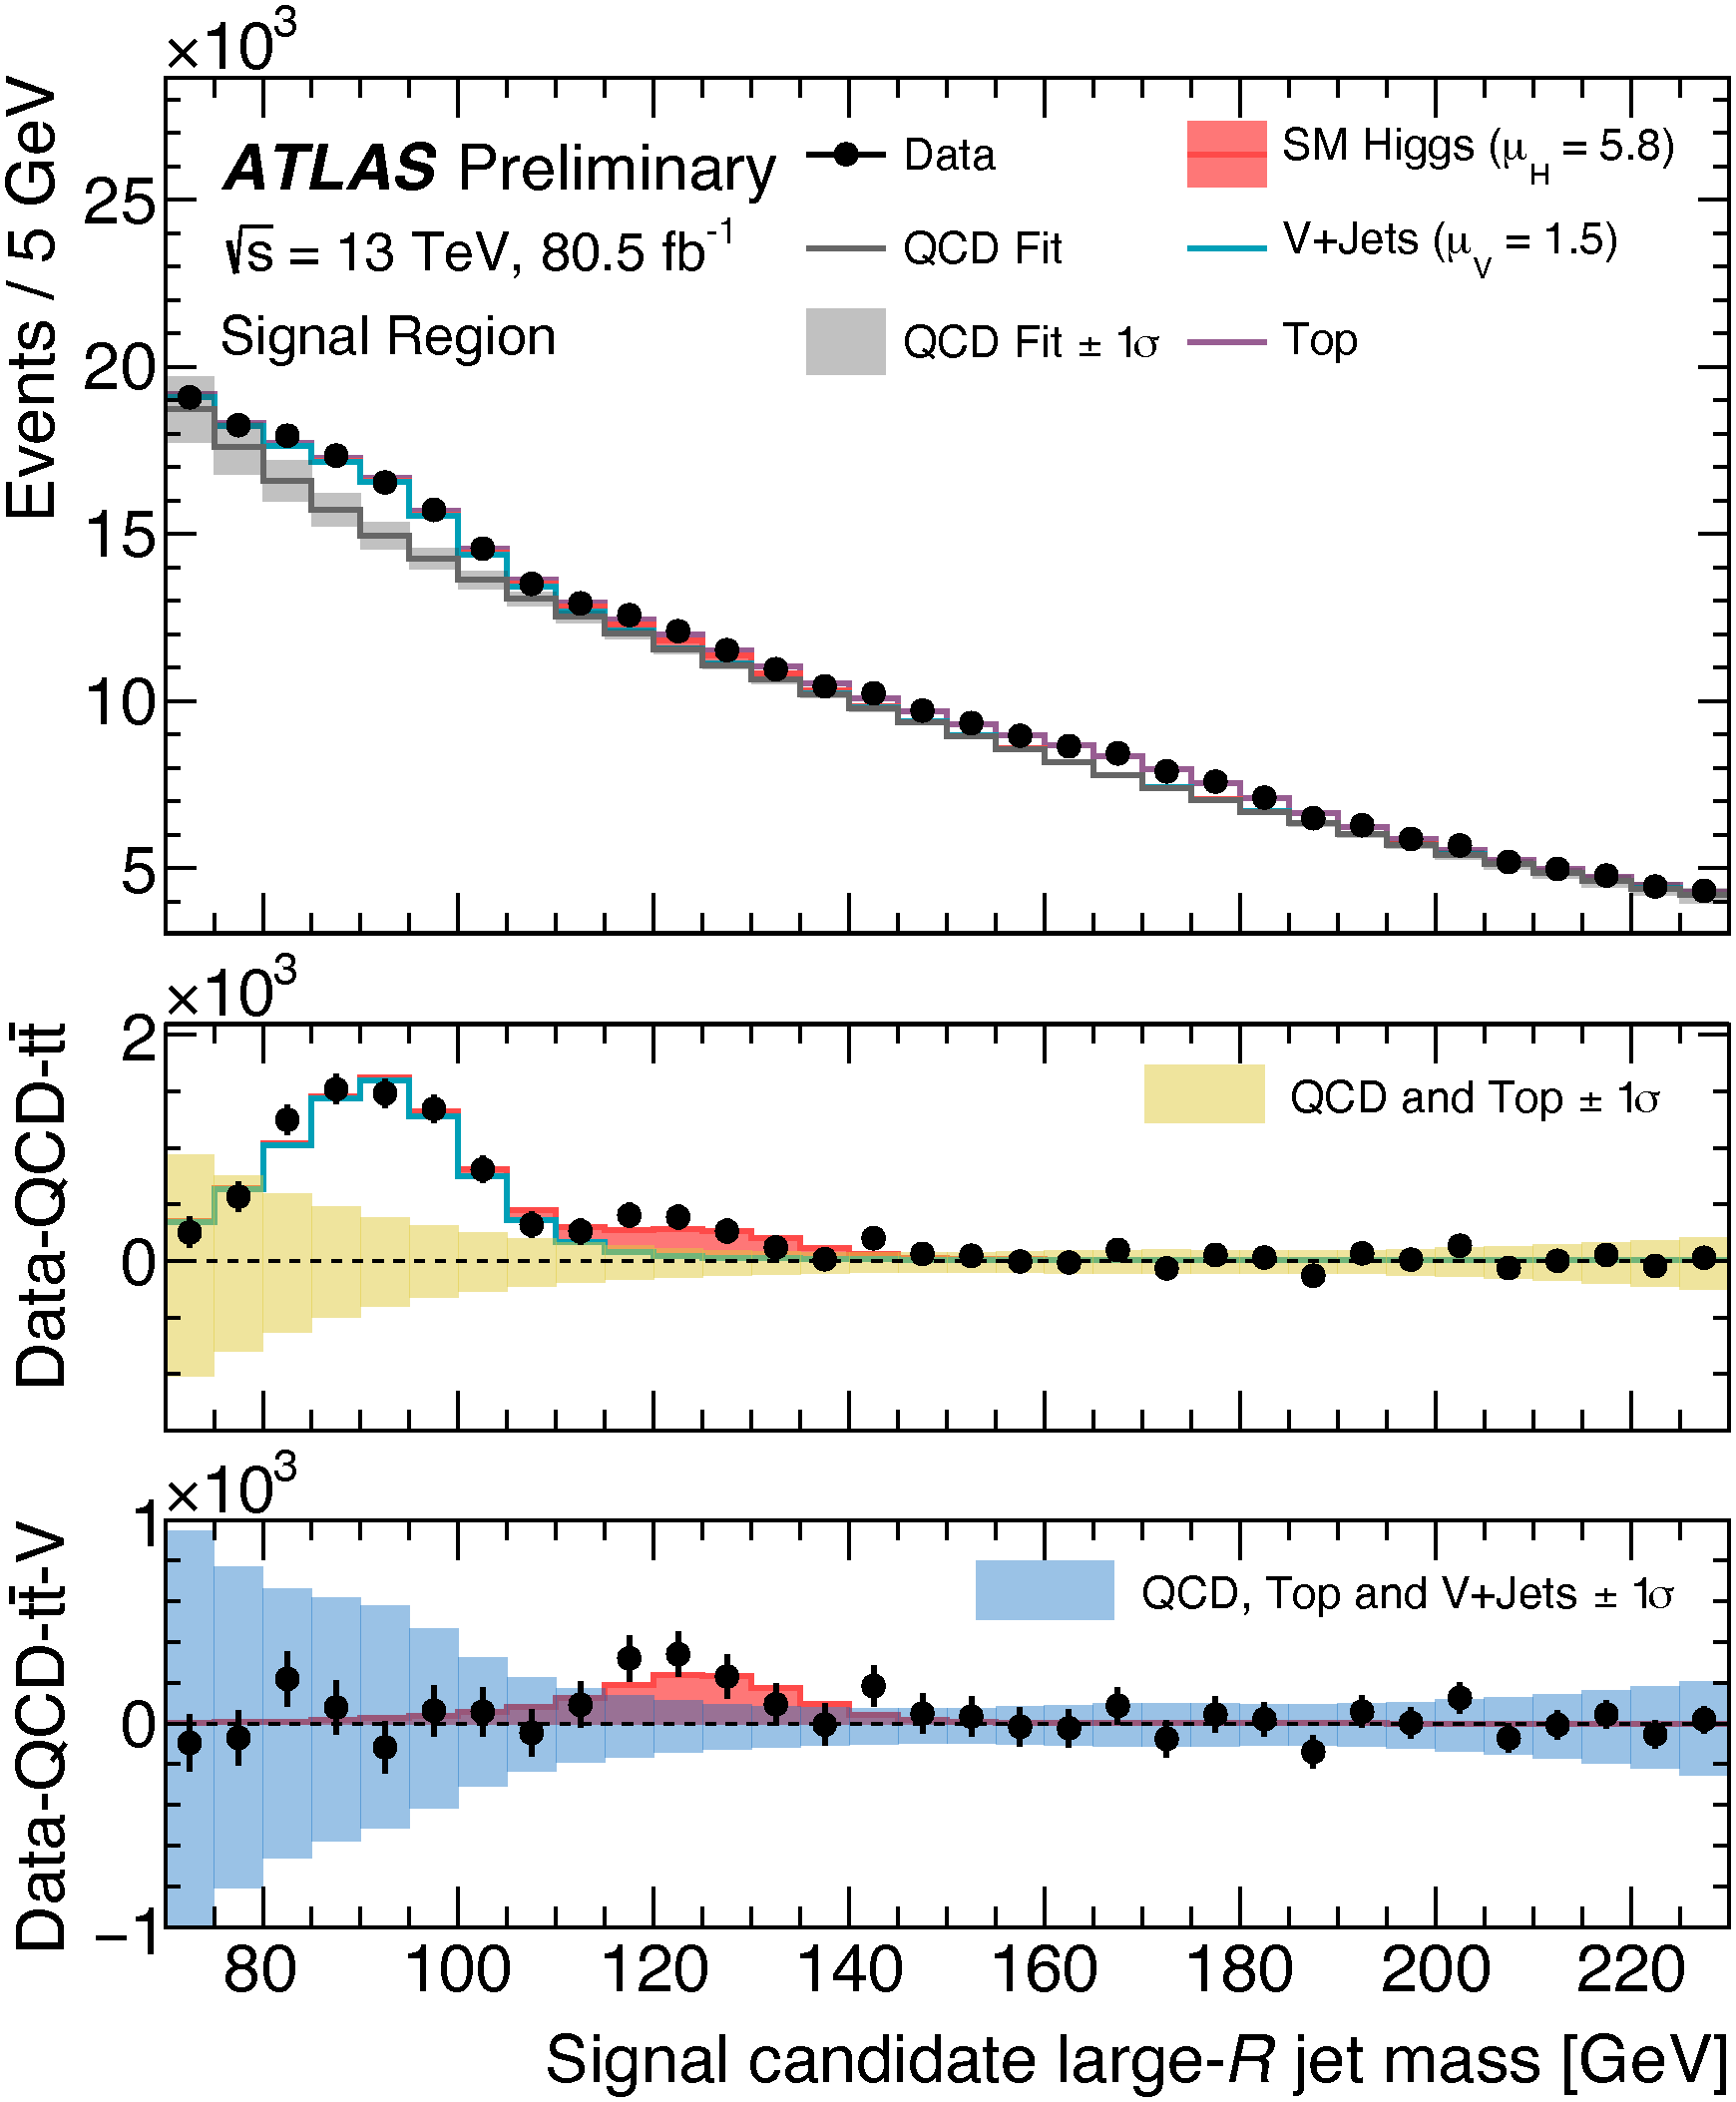 Preliminary low mass di-bjet search showing indications of an exess at the location expected for a Higgs boson, ATLAS-CONF-2018-052